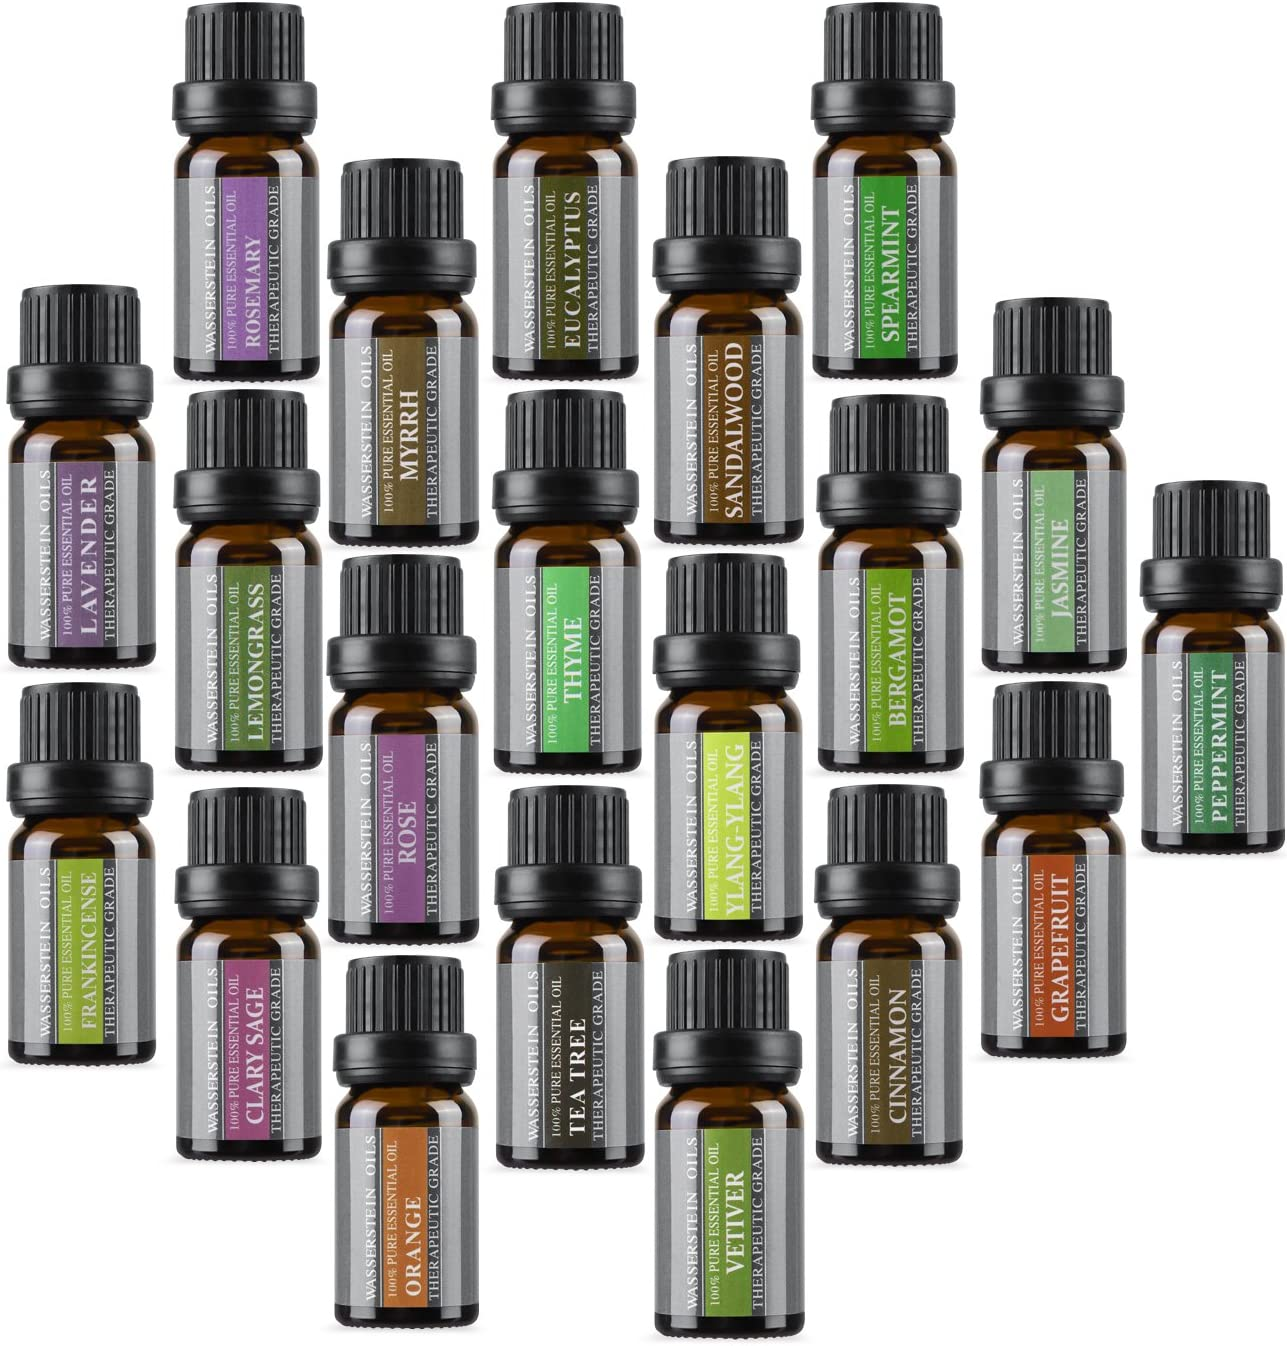 Top 20 Aromatherapy Essential Oil, 10ml, 100% Pure & Natural by Wasserstein (Lavender, Tea Tree, Eucalyptus, Lemongrass, Orange Peppermint, and Much More)